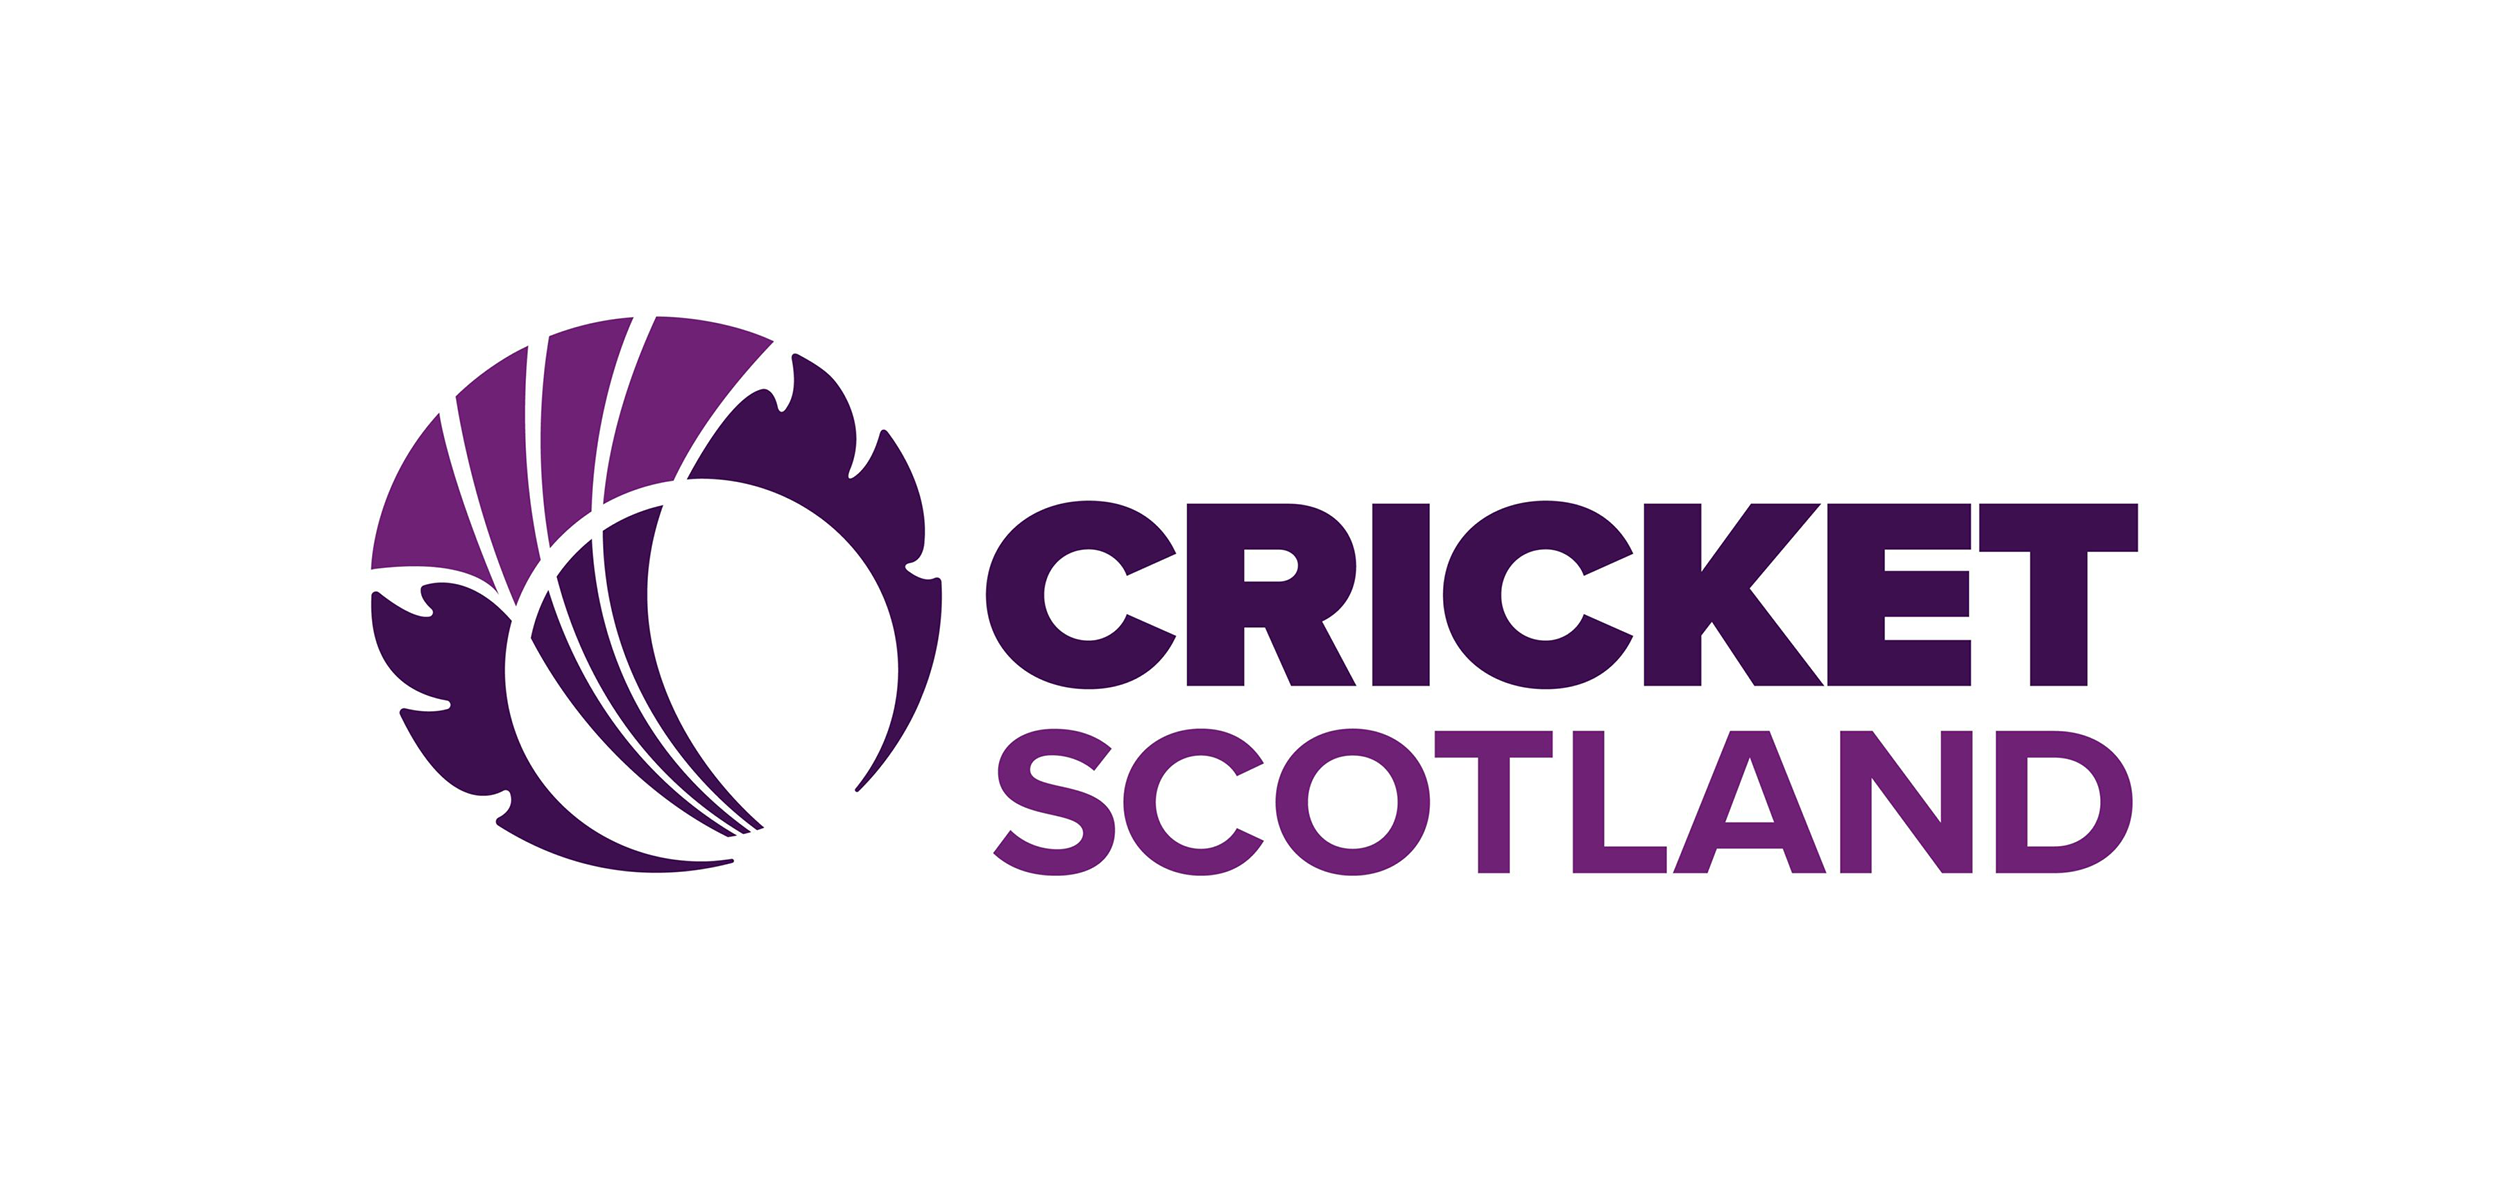 Cricket Scotland: Annual General and Extraordinary General Meetings held on 28 April